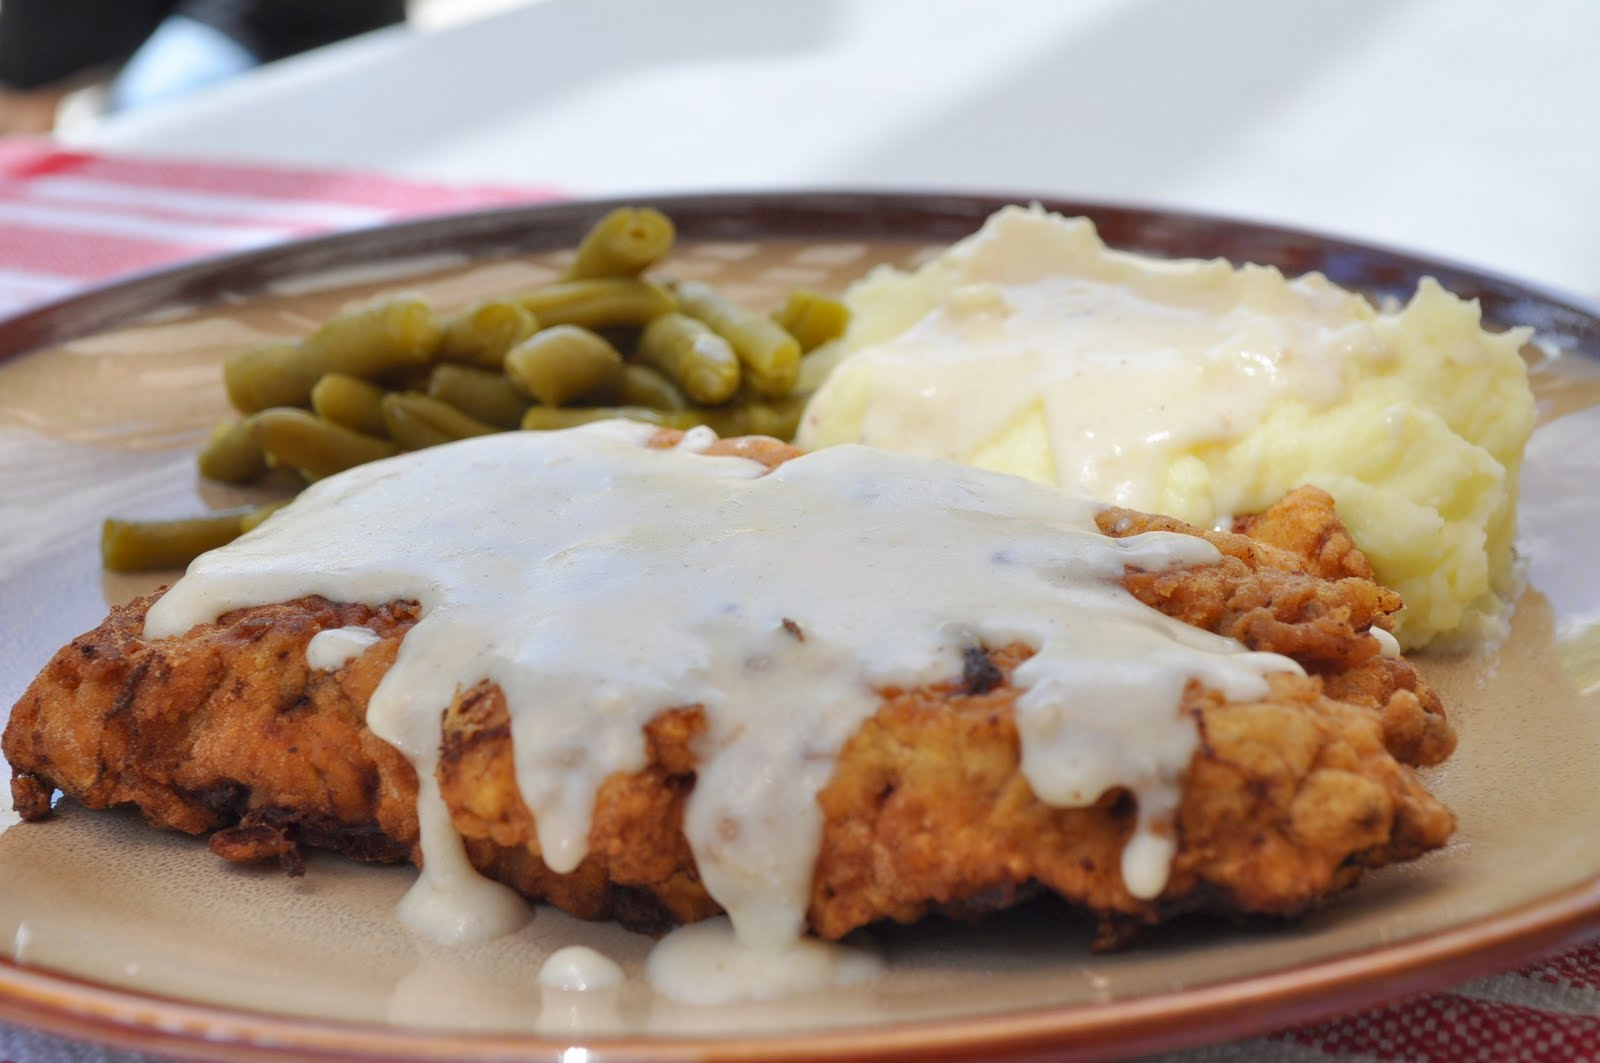 ... chicken fried steak dinner french country bread hearty lunch steak